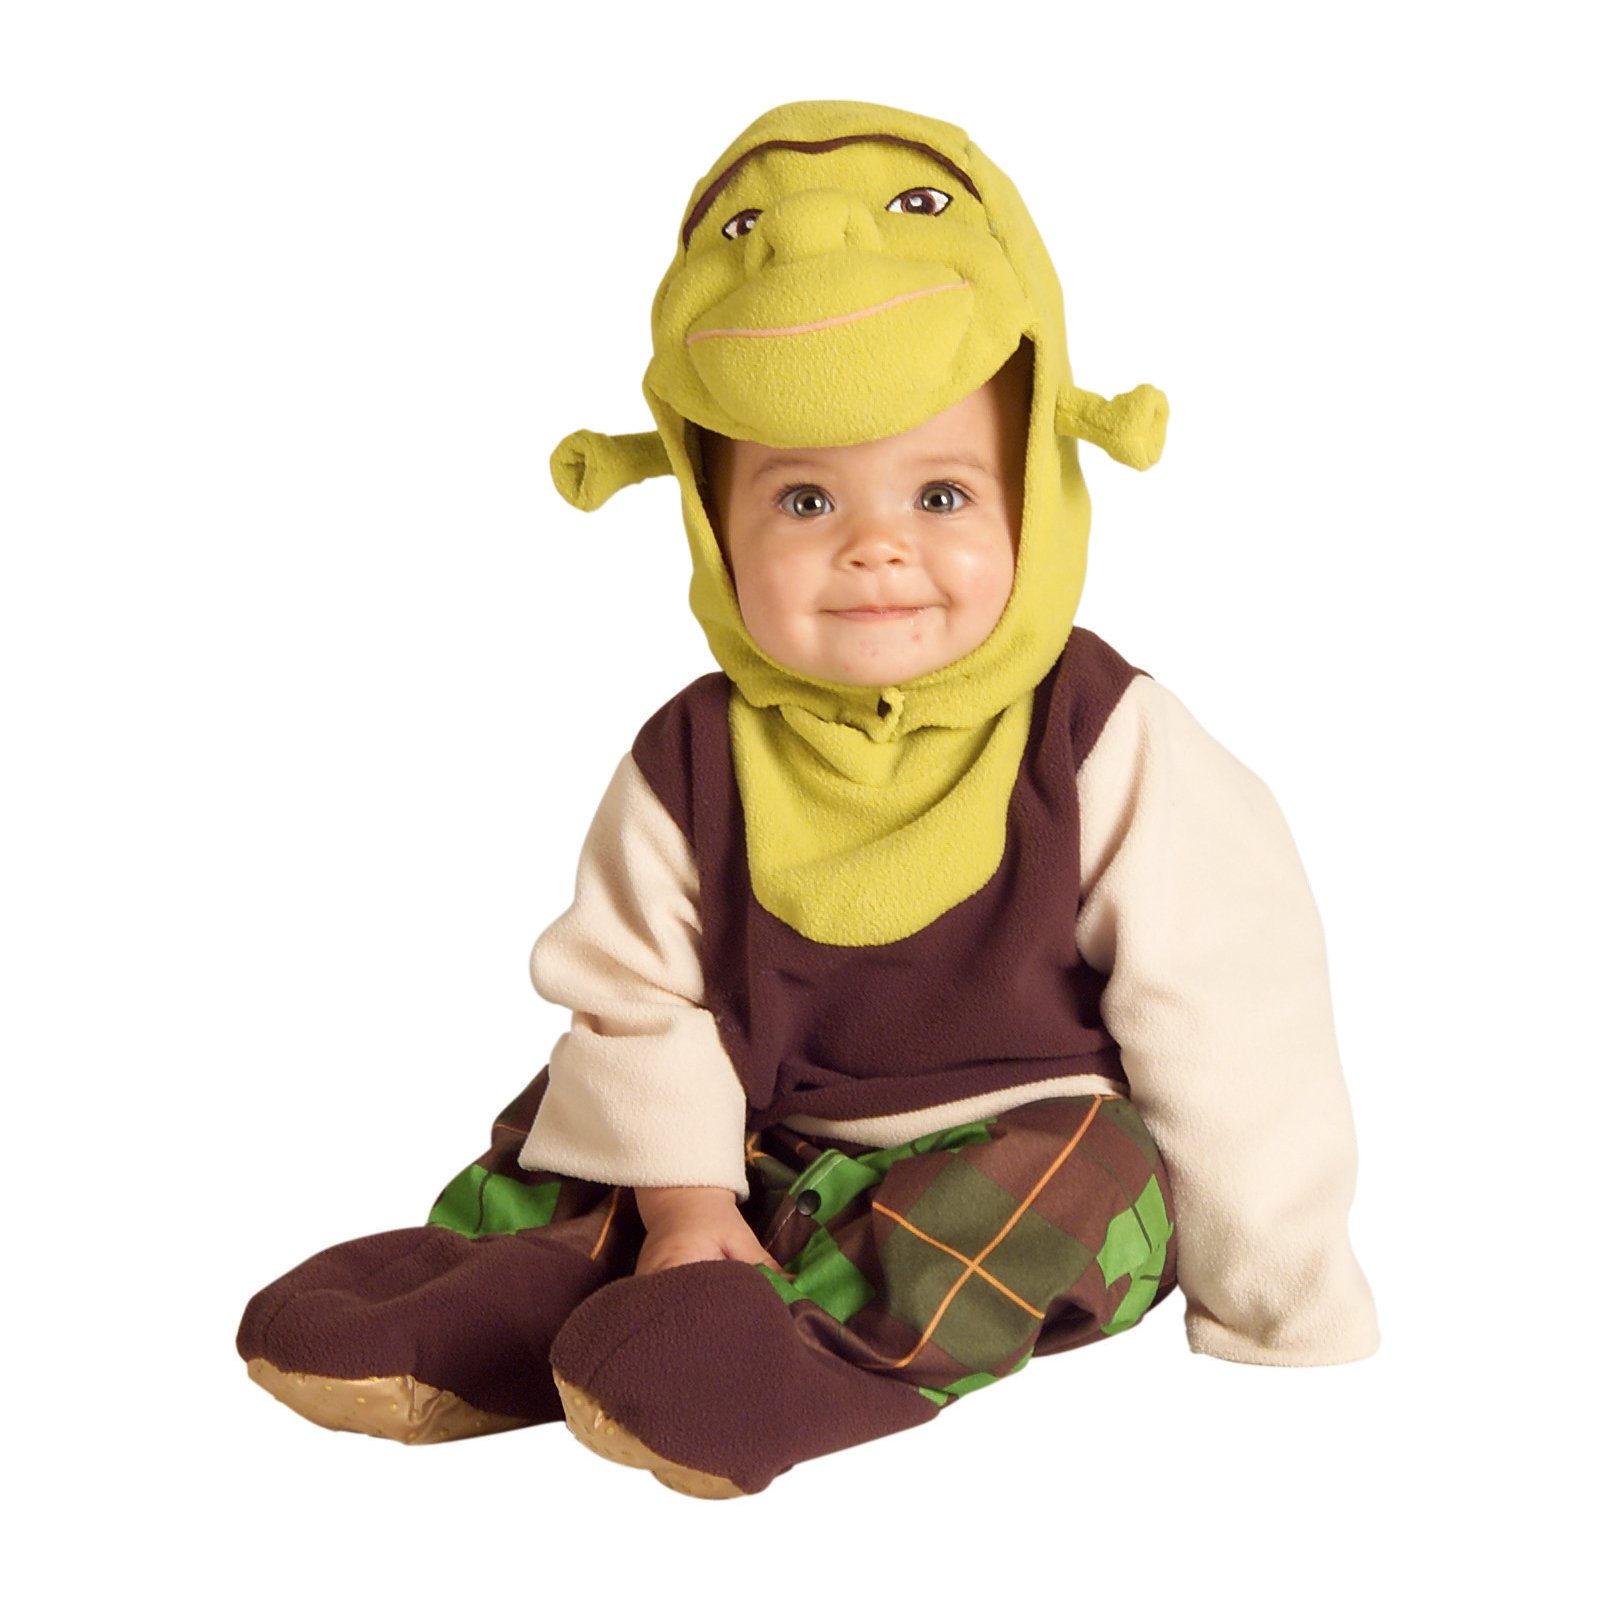 Baby Shrek Romper Infant Costume